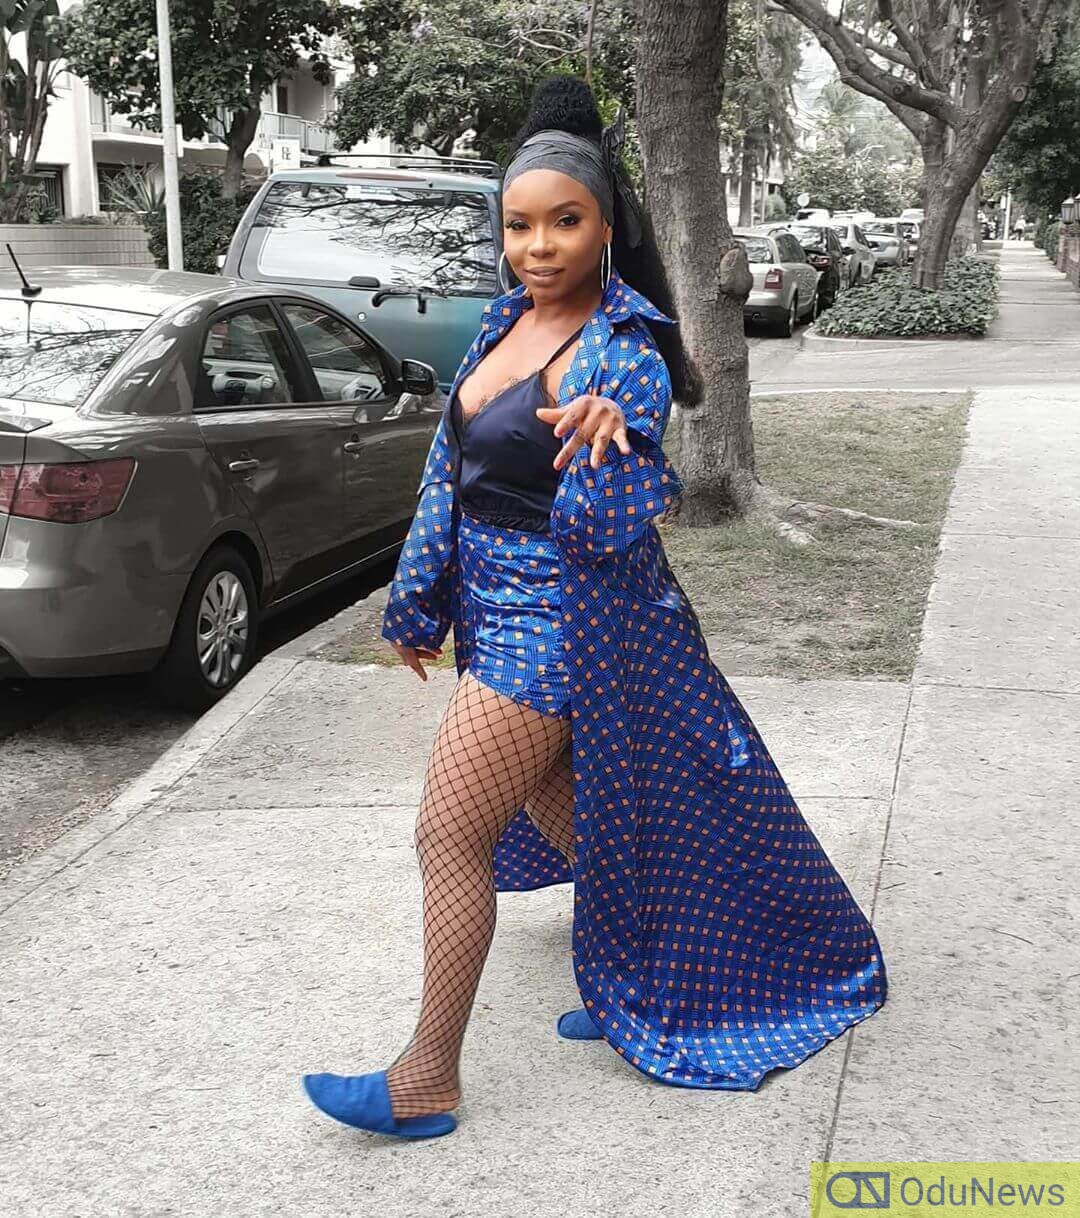 Yemi Alade is a Nigerian artist who has done things that many of her contemporaries dream of